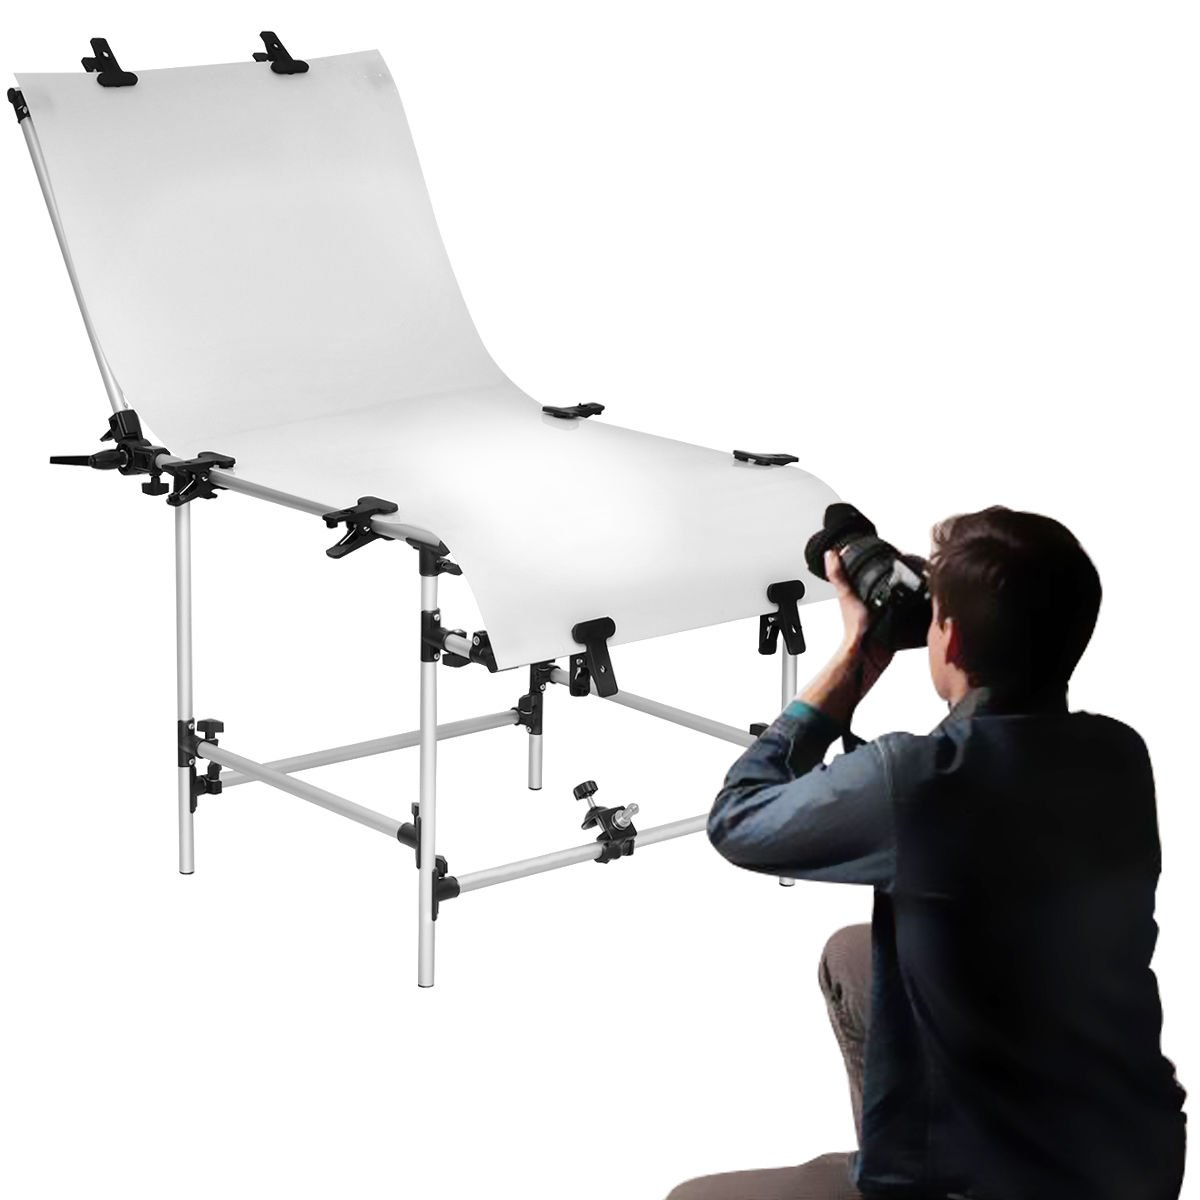 Safstar Photo Shooting Table PVC Board Non-Reflective Photo Studio Bench (23''x51'') by Safstar (Image #4)